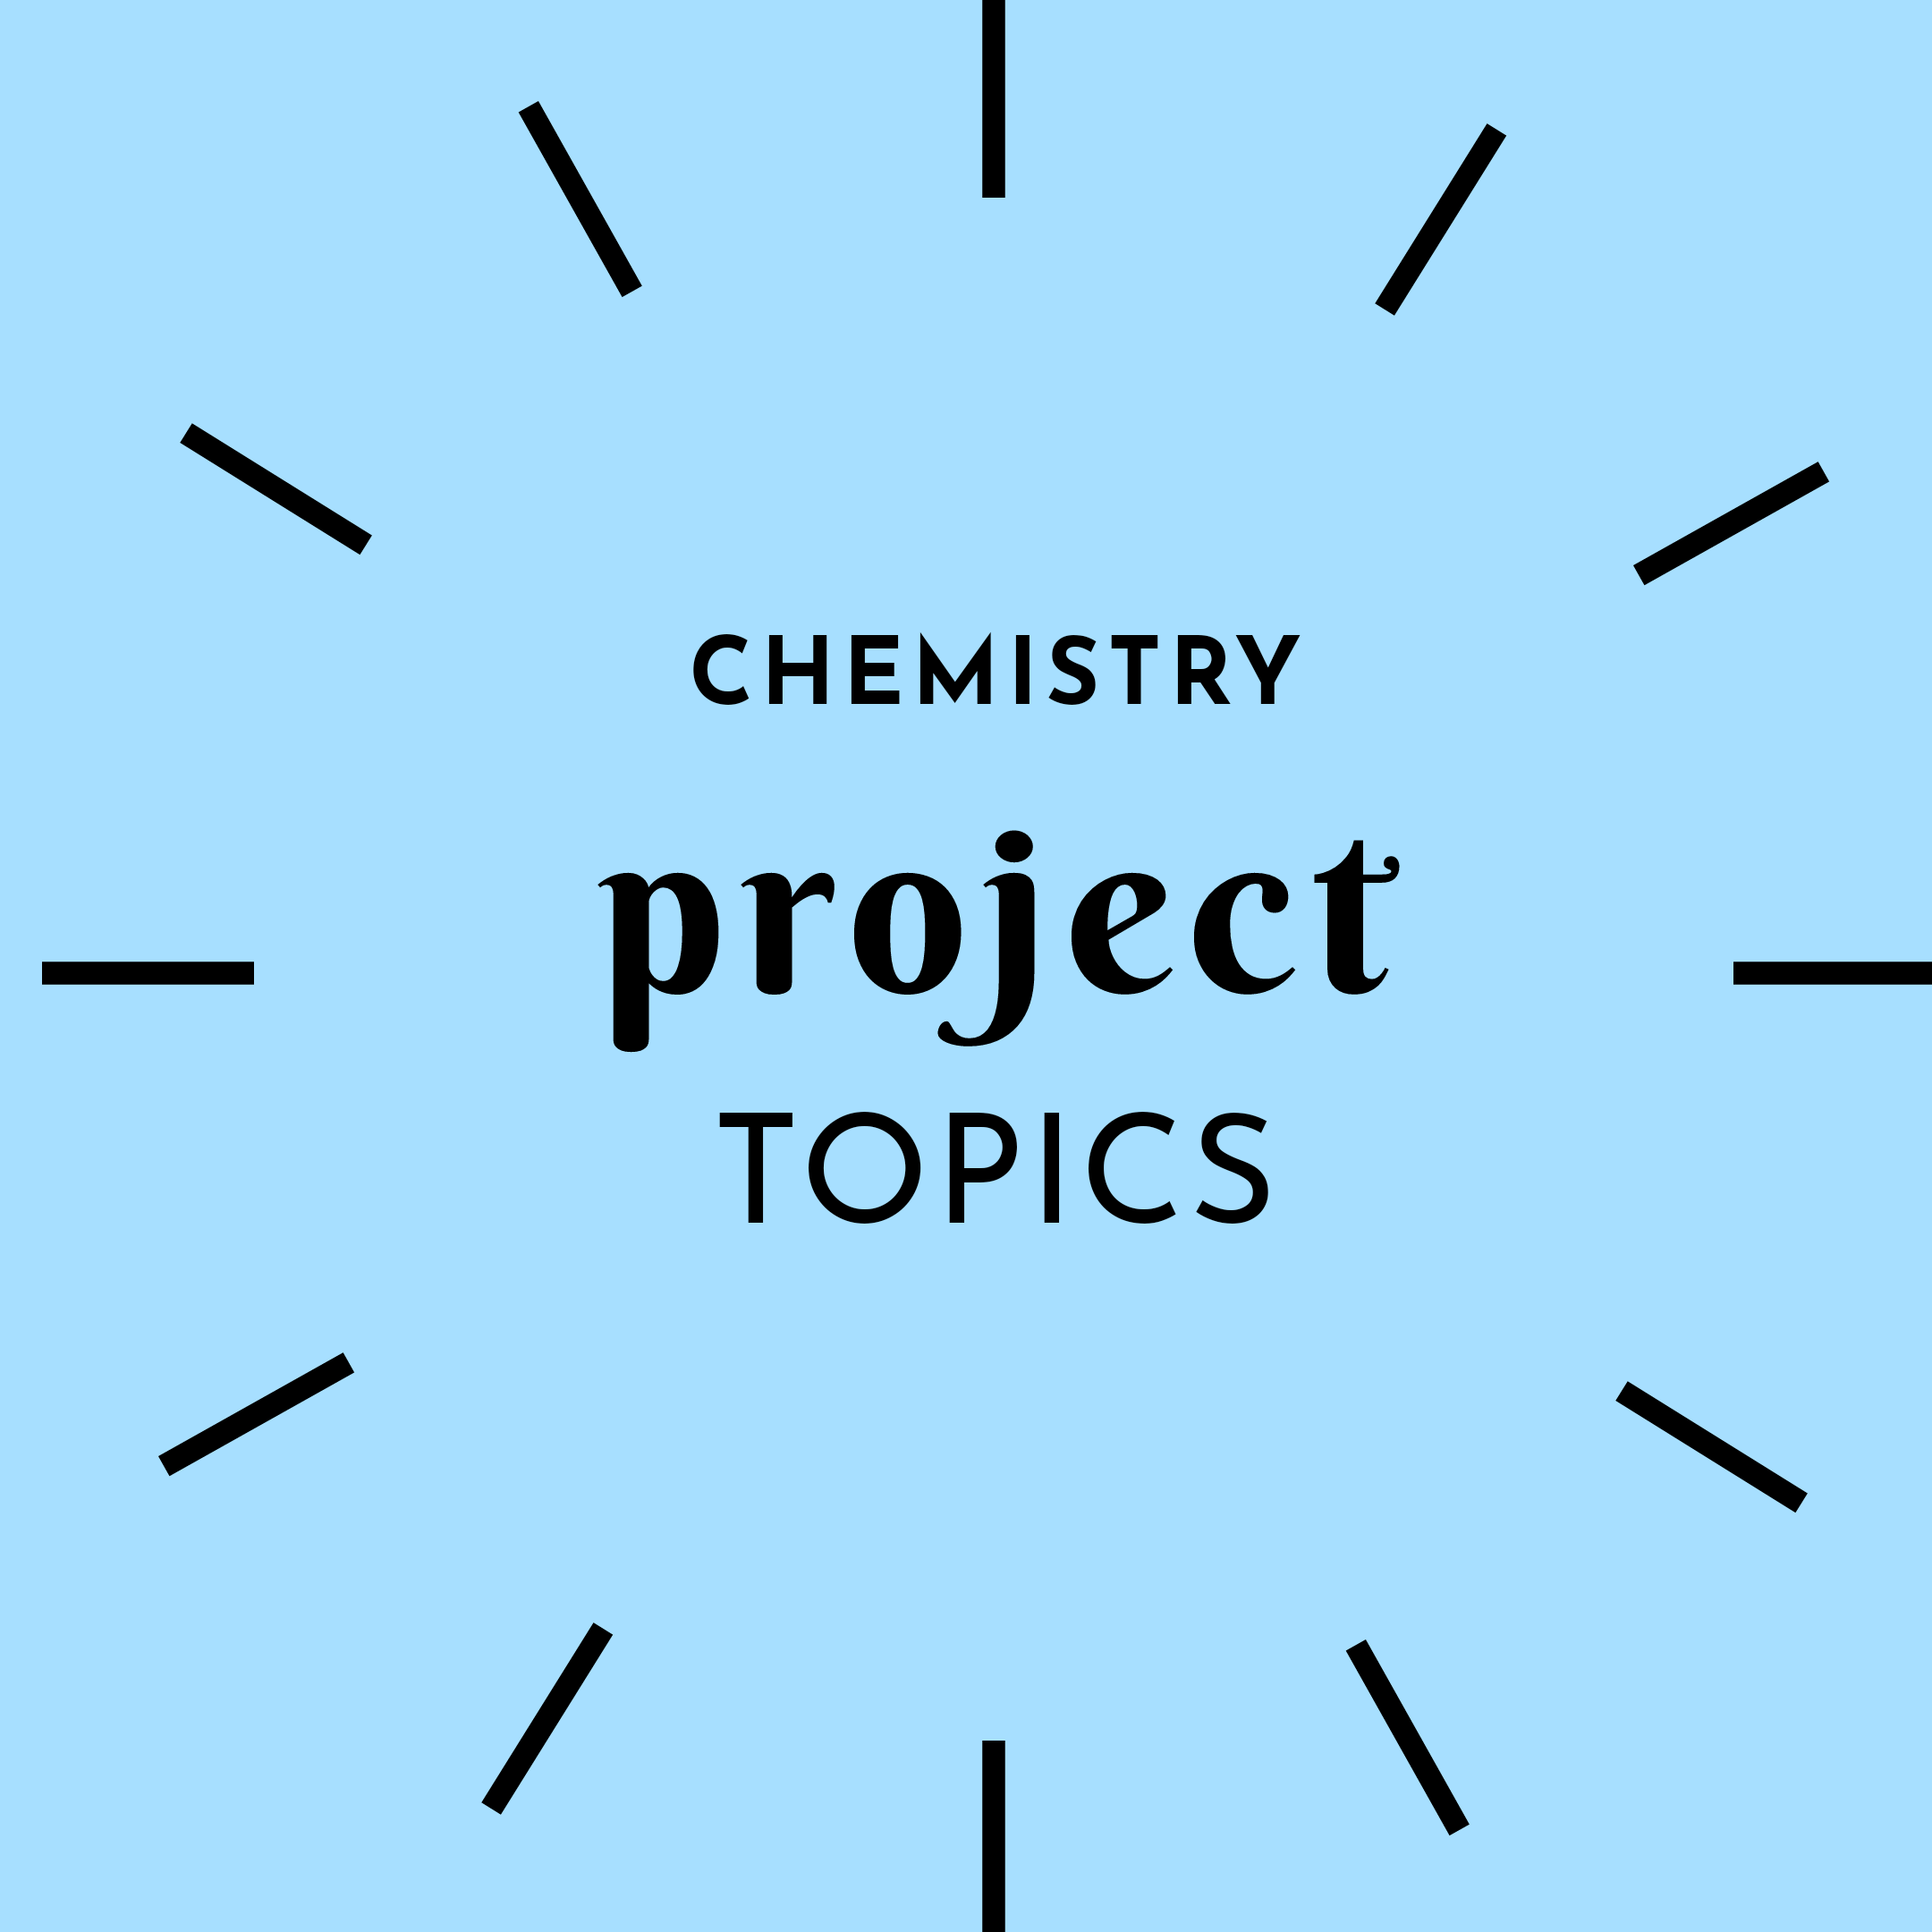 Project topics in chemistry